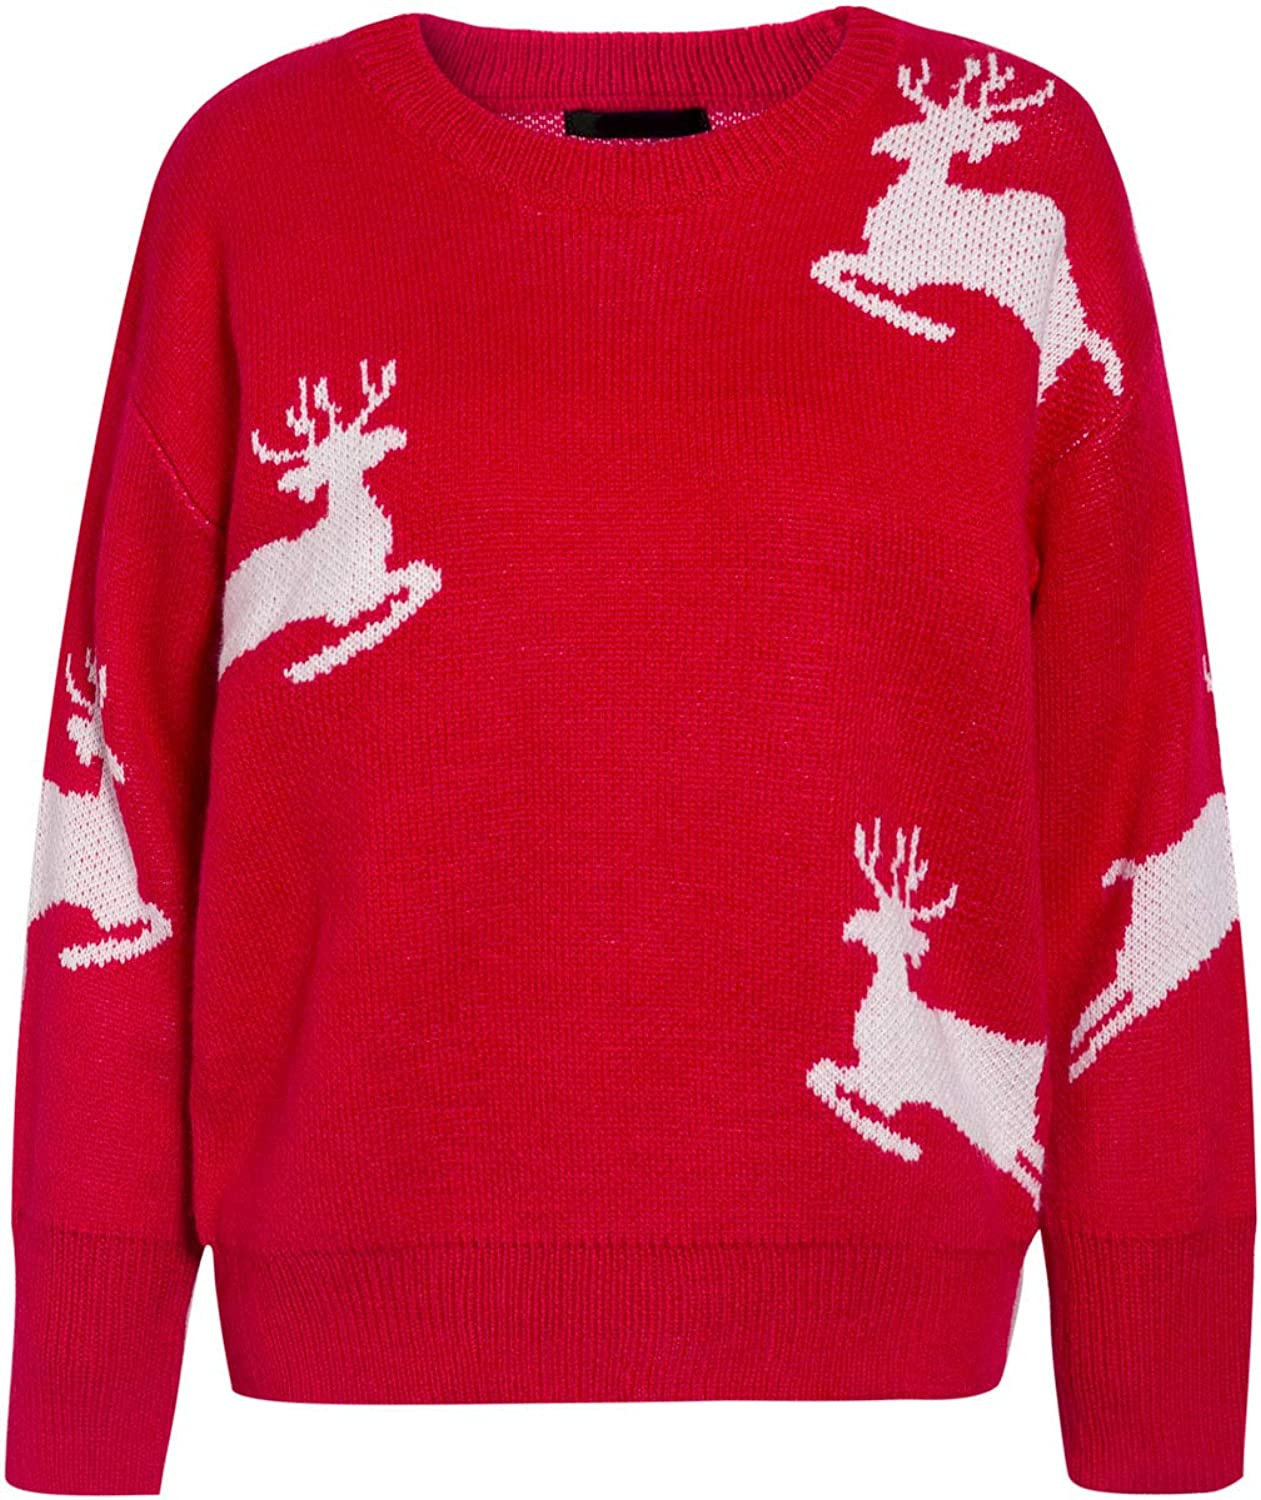 Miessial Women's Ugly Christmas Reindeer Sweater Pullovers Warm Crewneck Chunky Knitted Sweaters